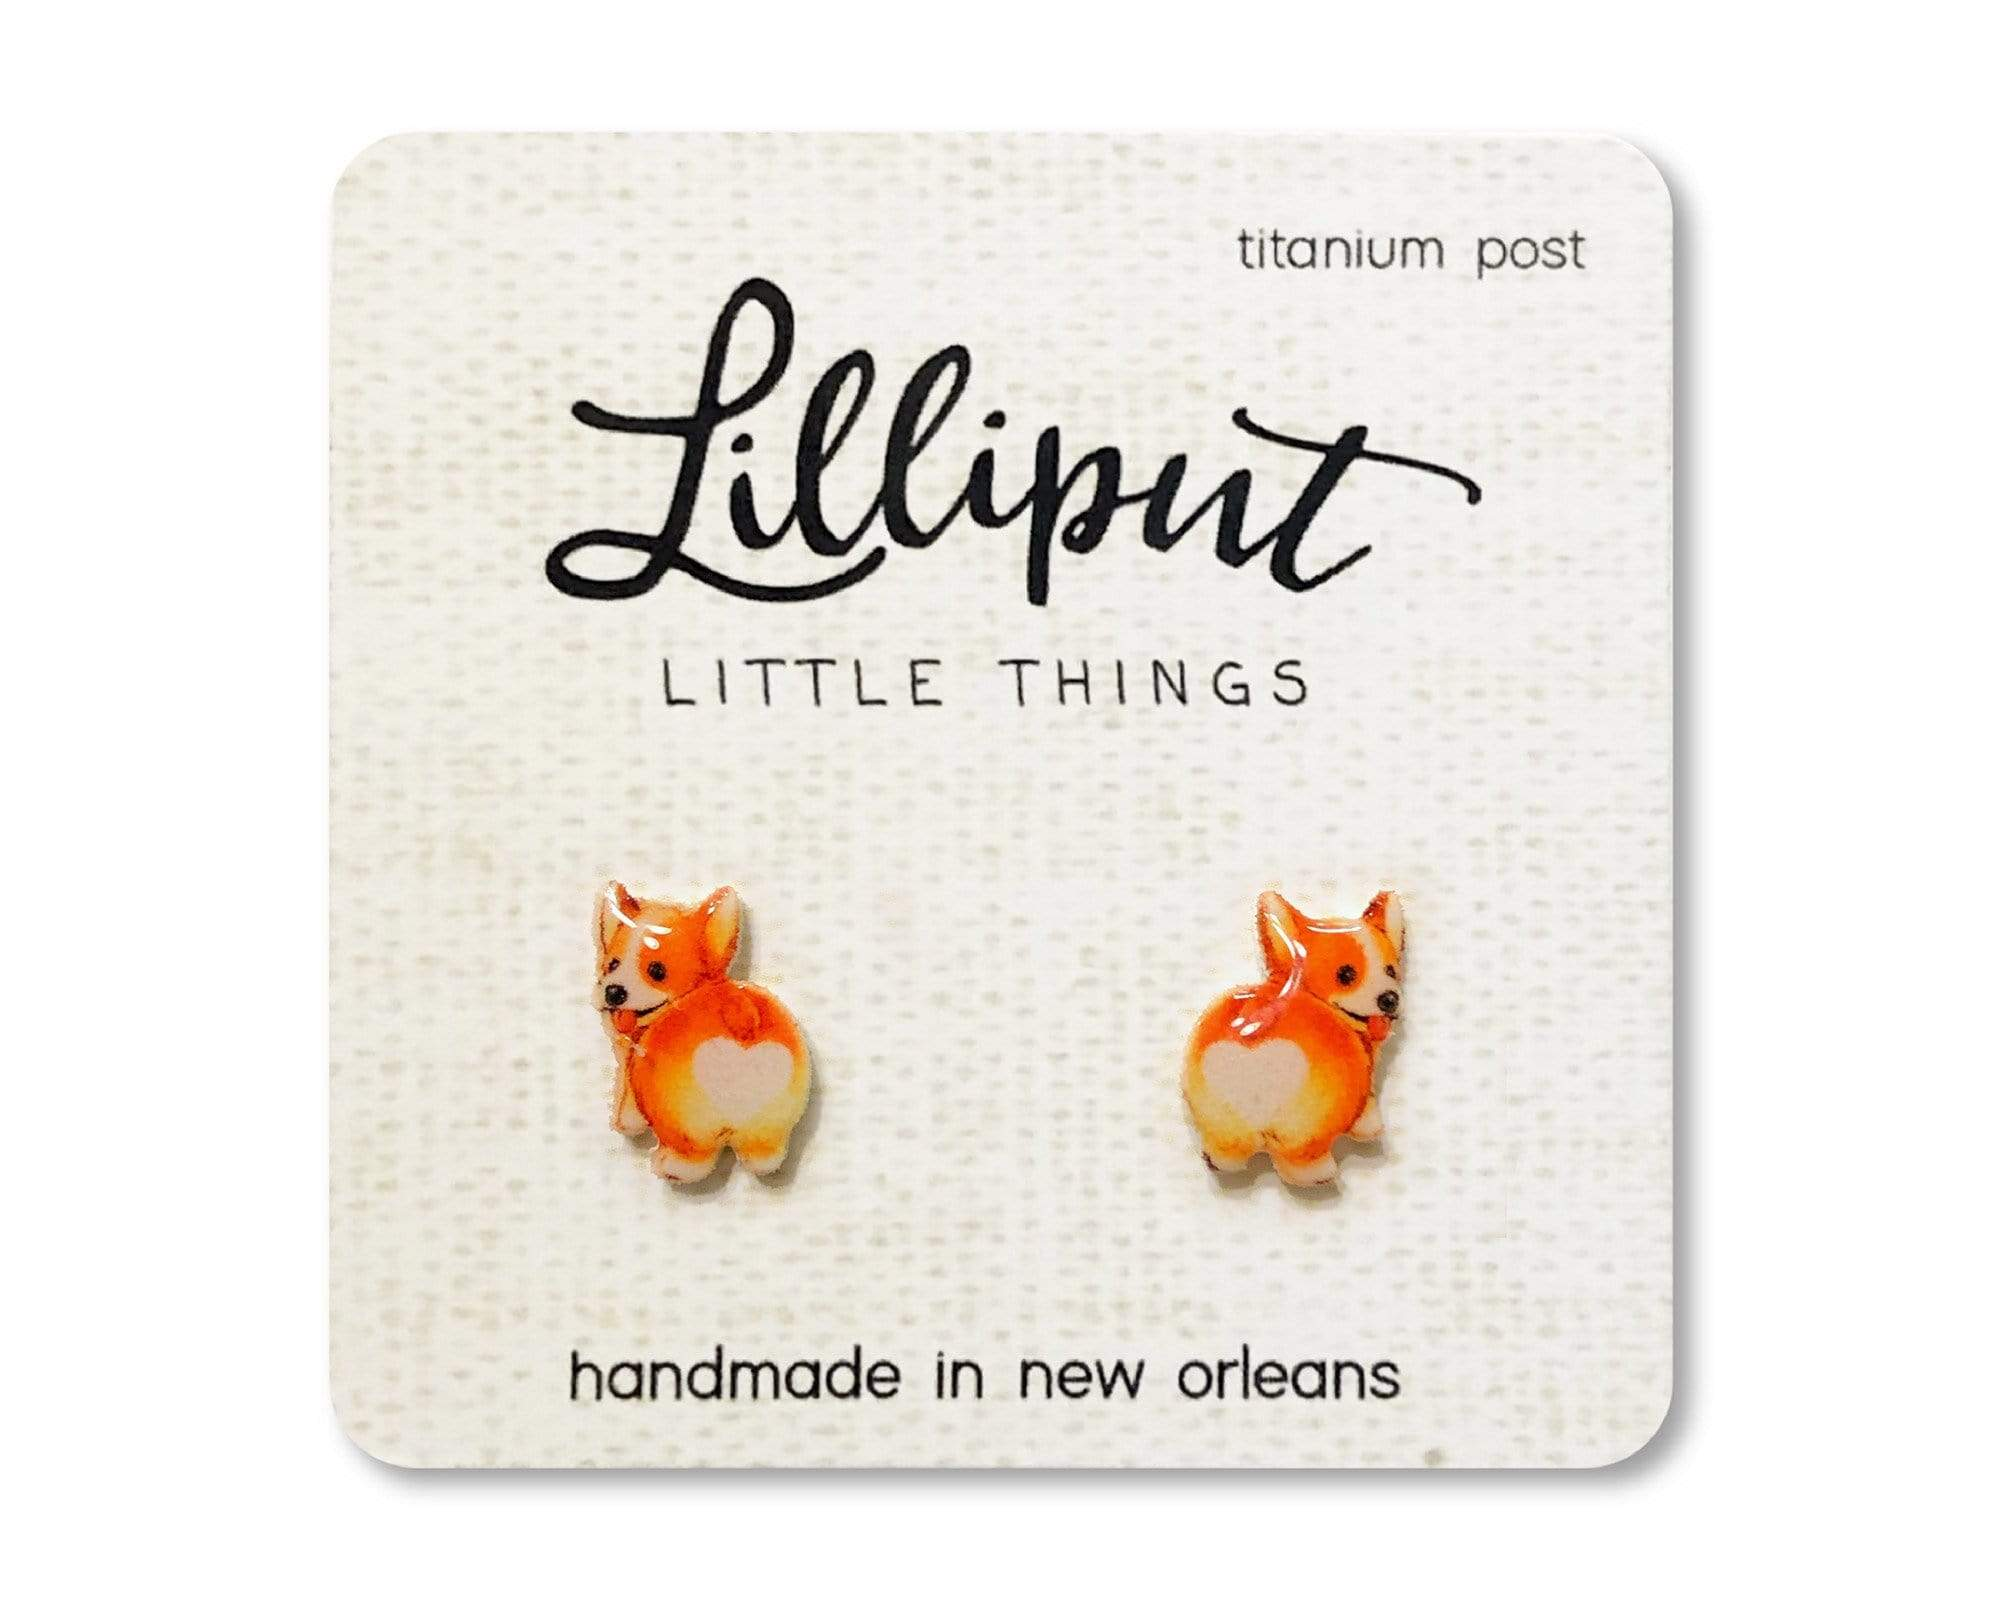 Corgi Butt Earrings Lilliput Little Things Clothing/Accessories